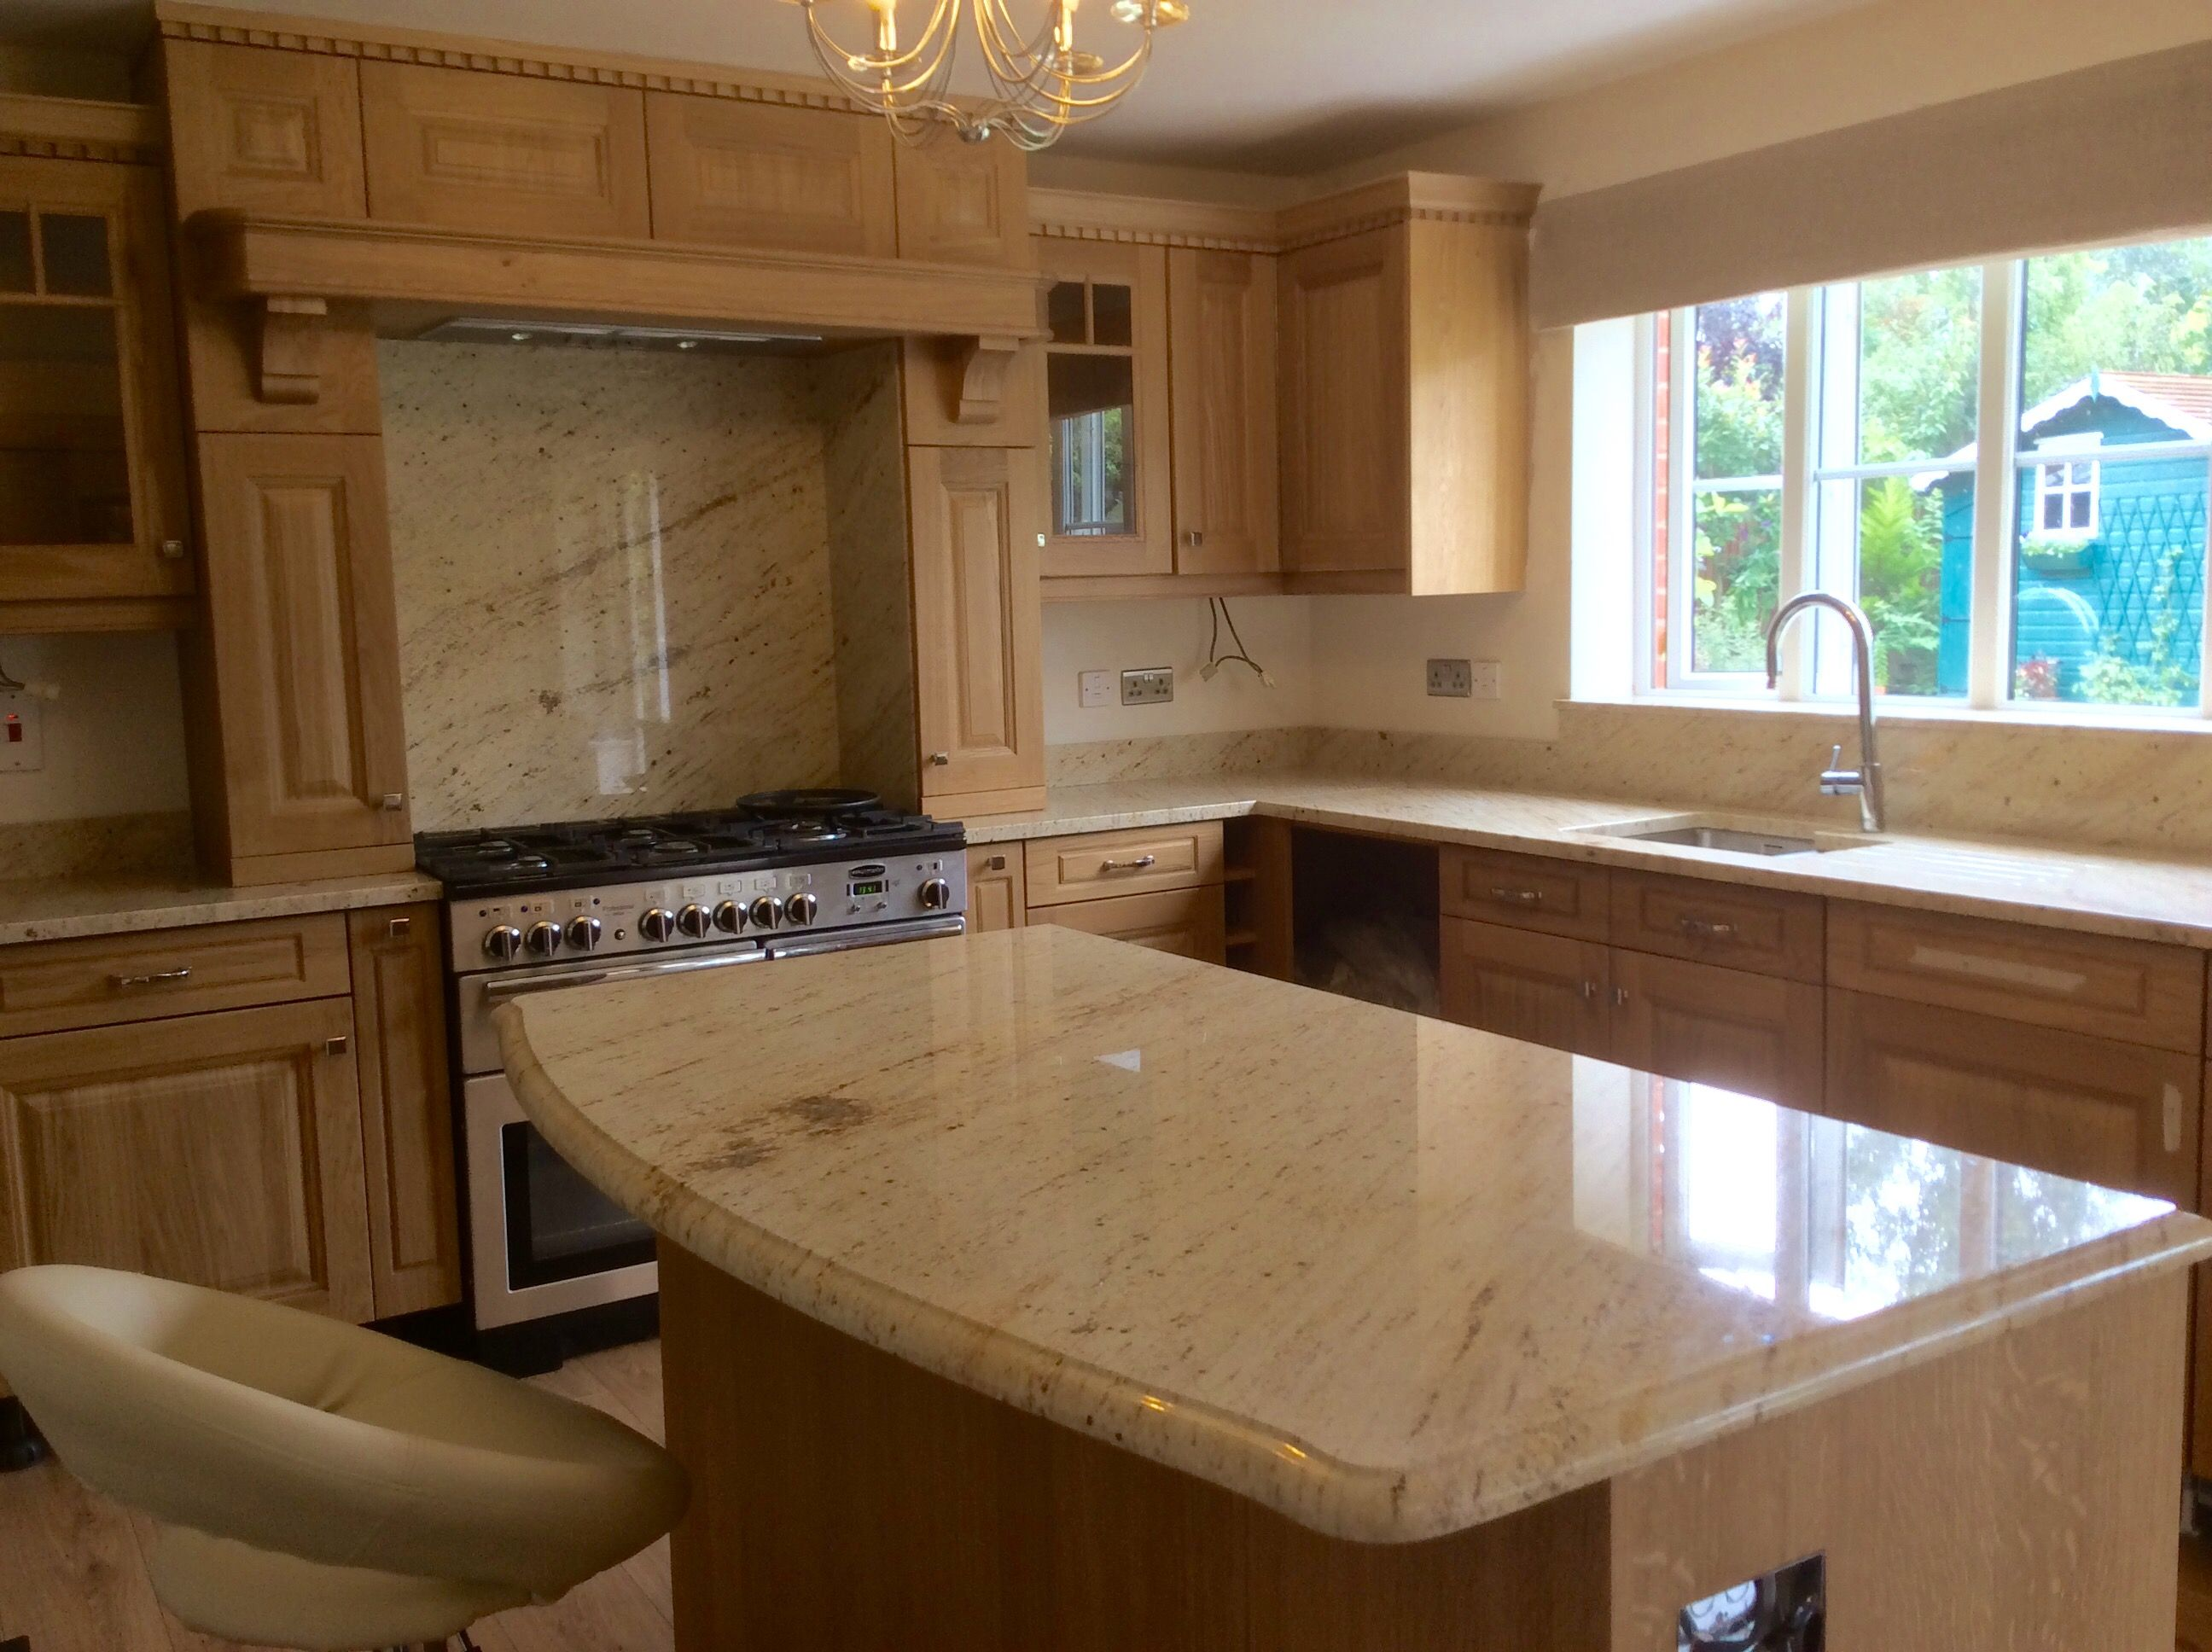 ivory cream shivakashi cream granite worktops fitted today ivory cream shivakashi cream granite worktops fitted today granite worktopsbrown granitebungalowkitchen ideasivory